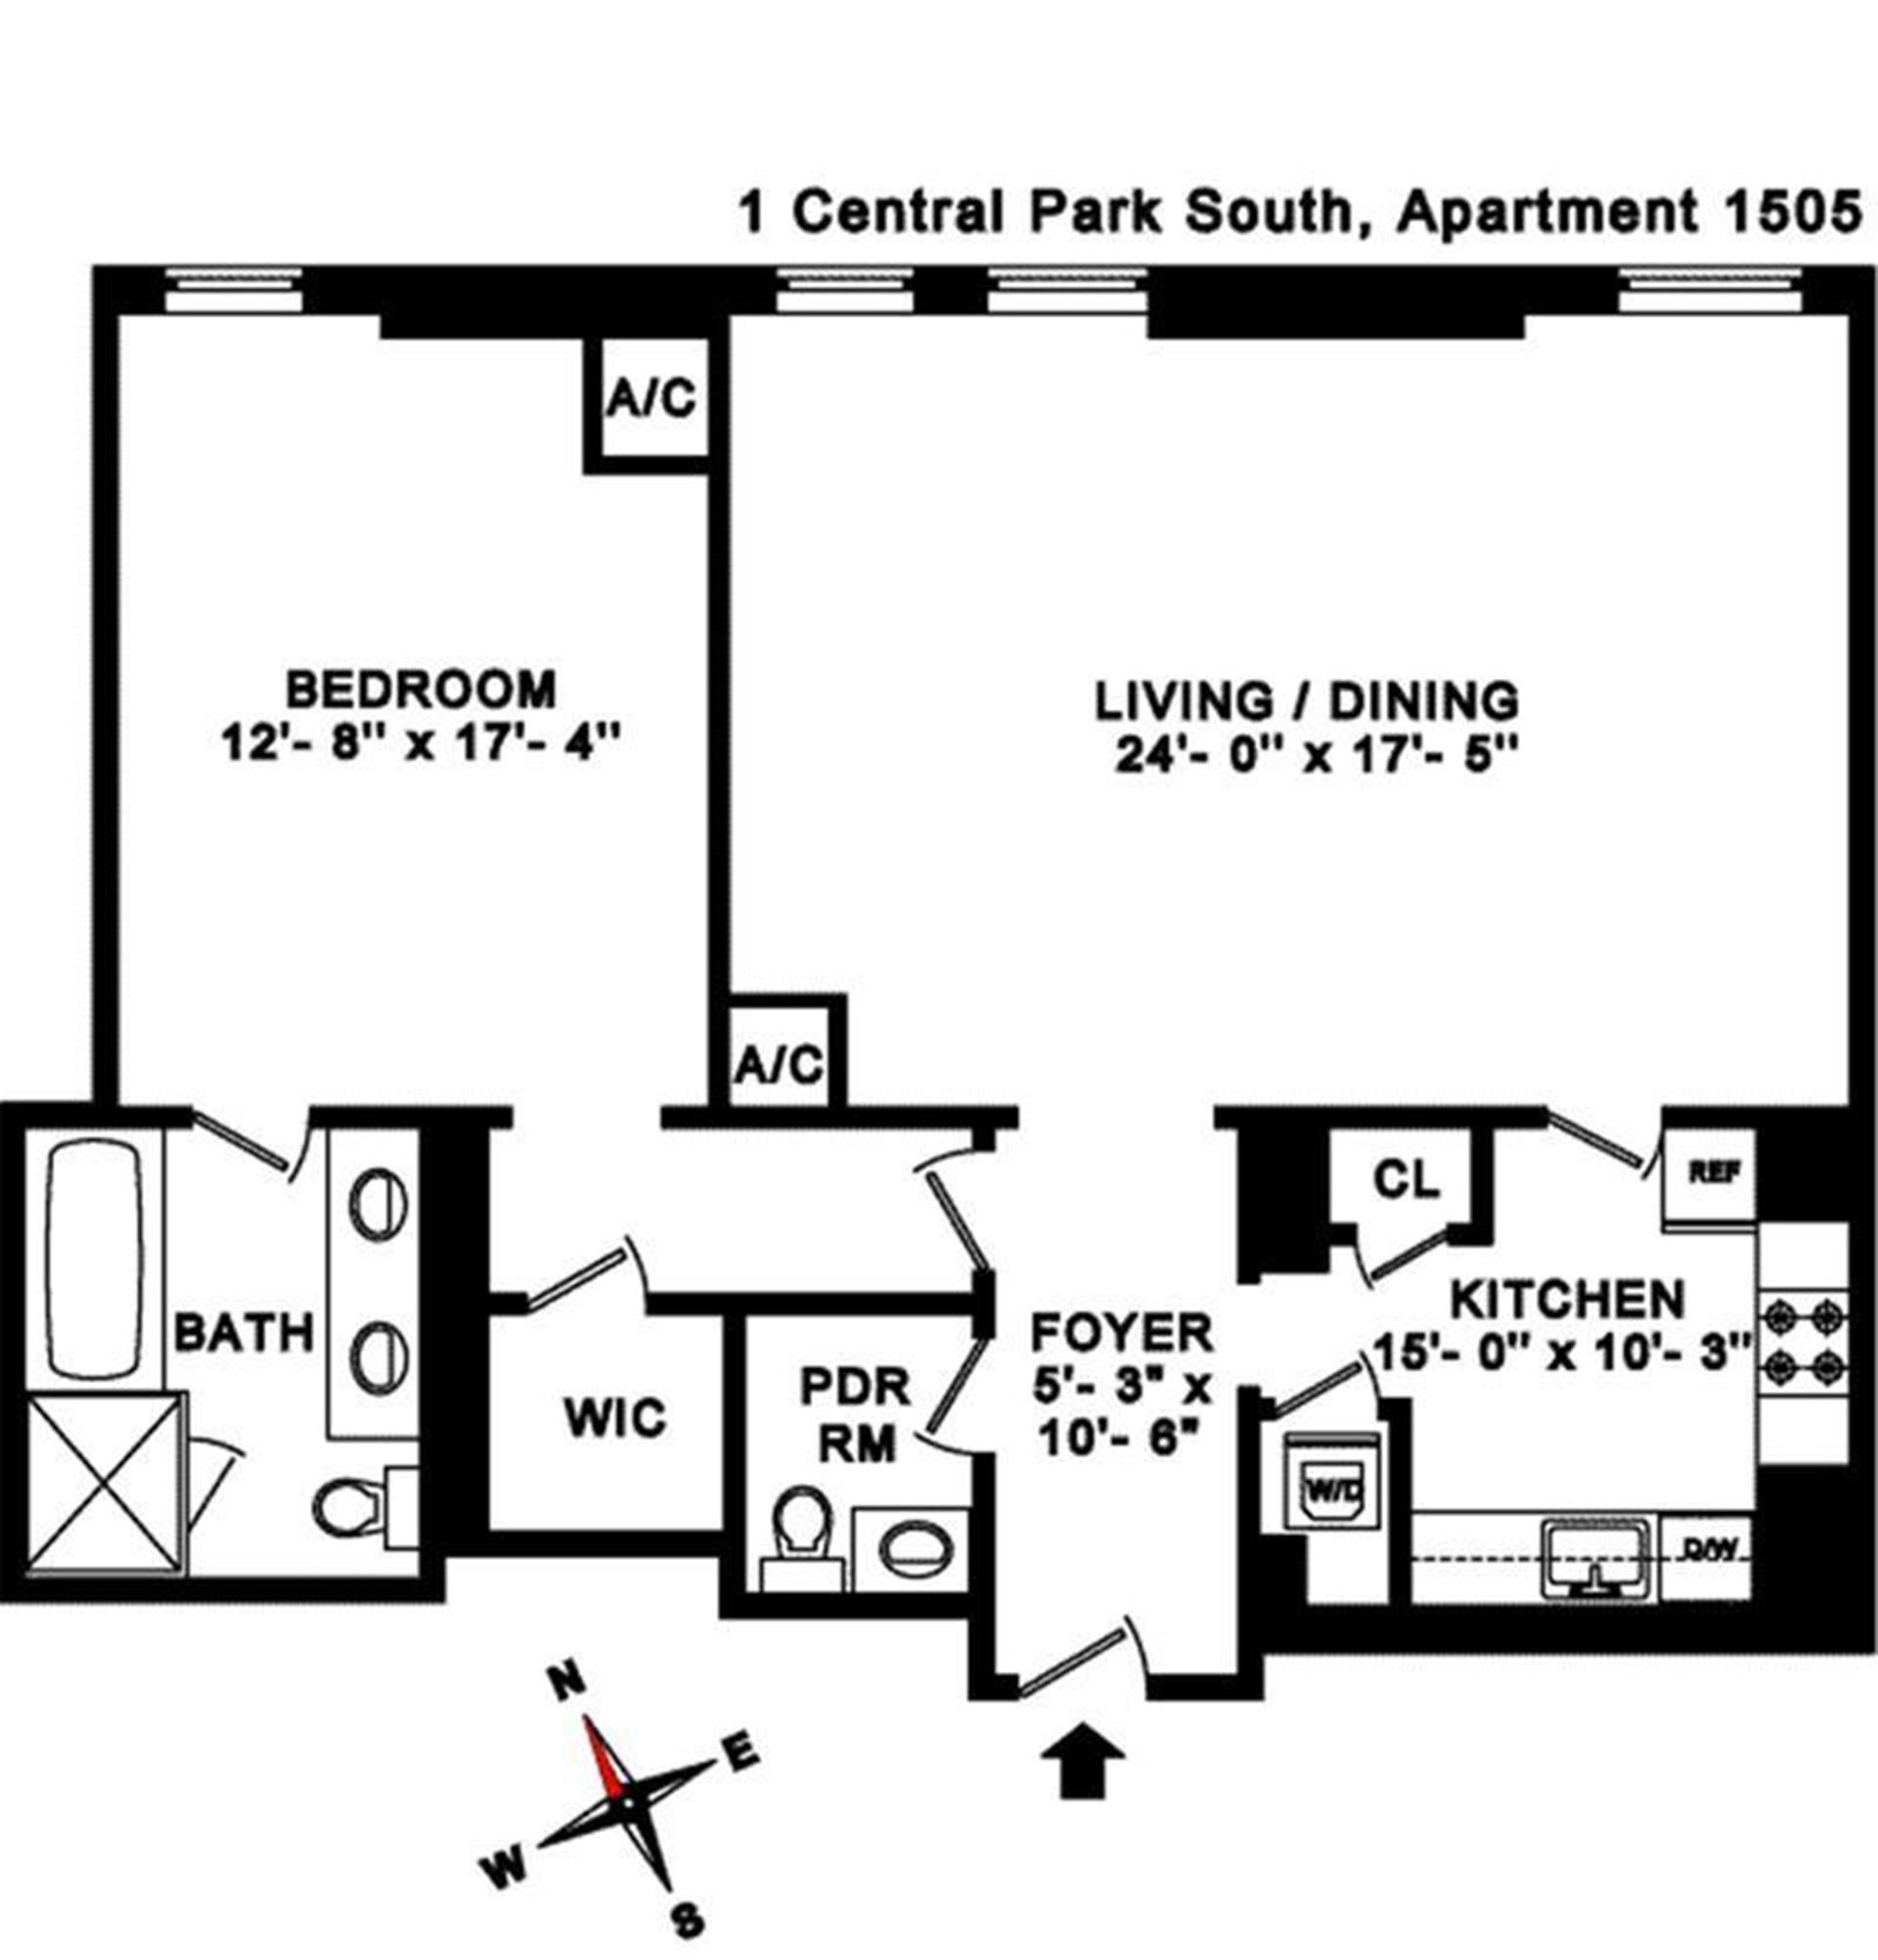 Floor plan of The Plaza Residences, 1 Central Park South, 1505 - Central Park South, New York